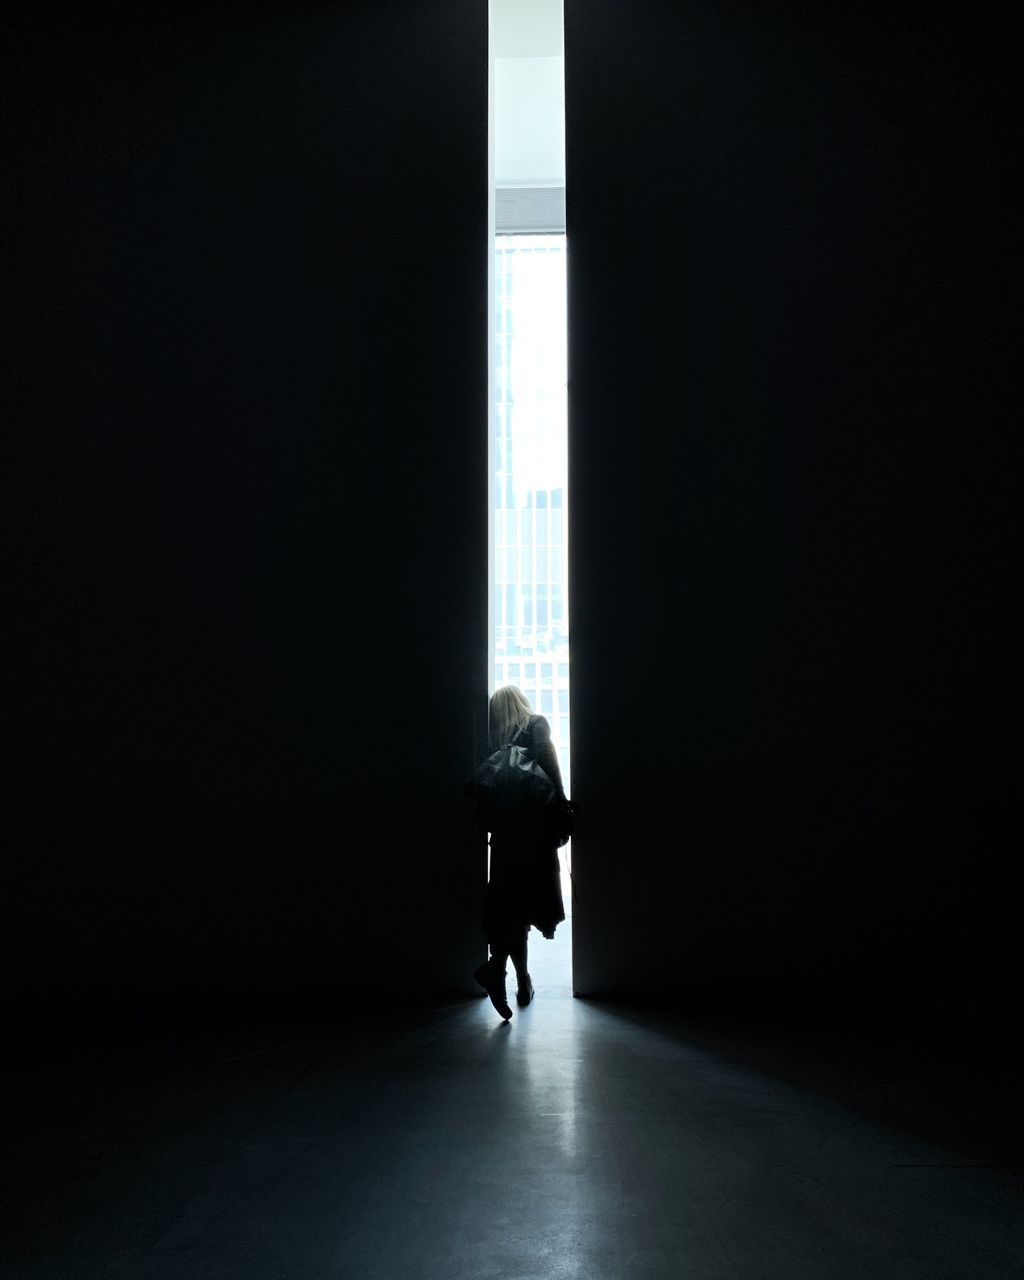 one person, indoors, real people, full length, copy space, lifestyles, architecture, day, men, dark, built structure, leisure activity, rear view, walking, silhouette, window, women, flooring, sunlight, light at the end of the tunnel